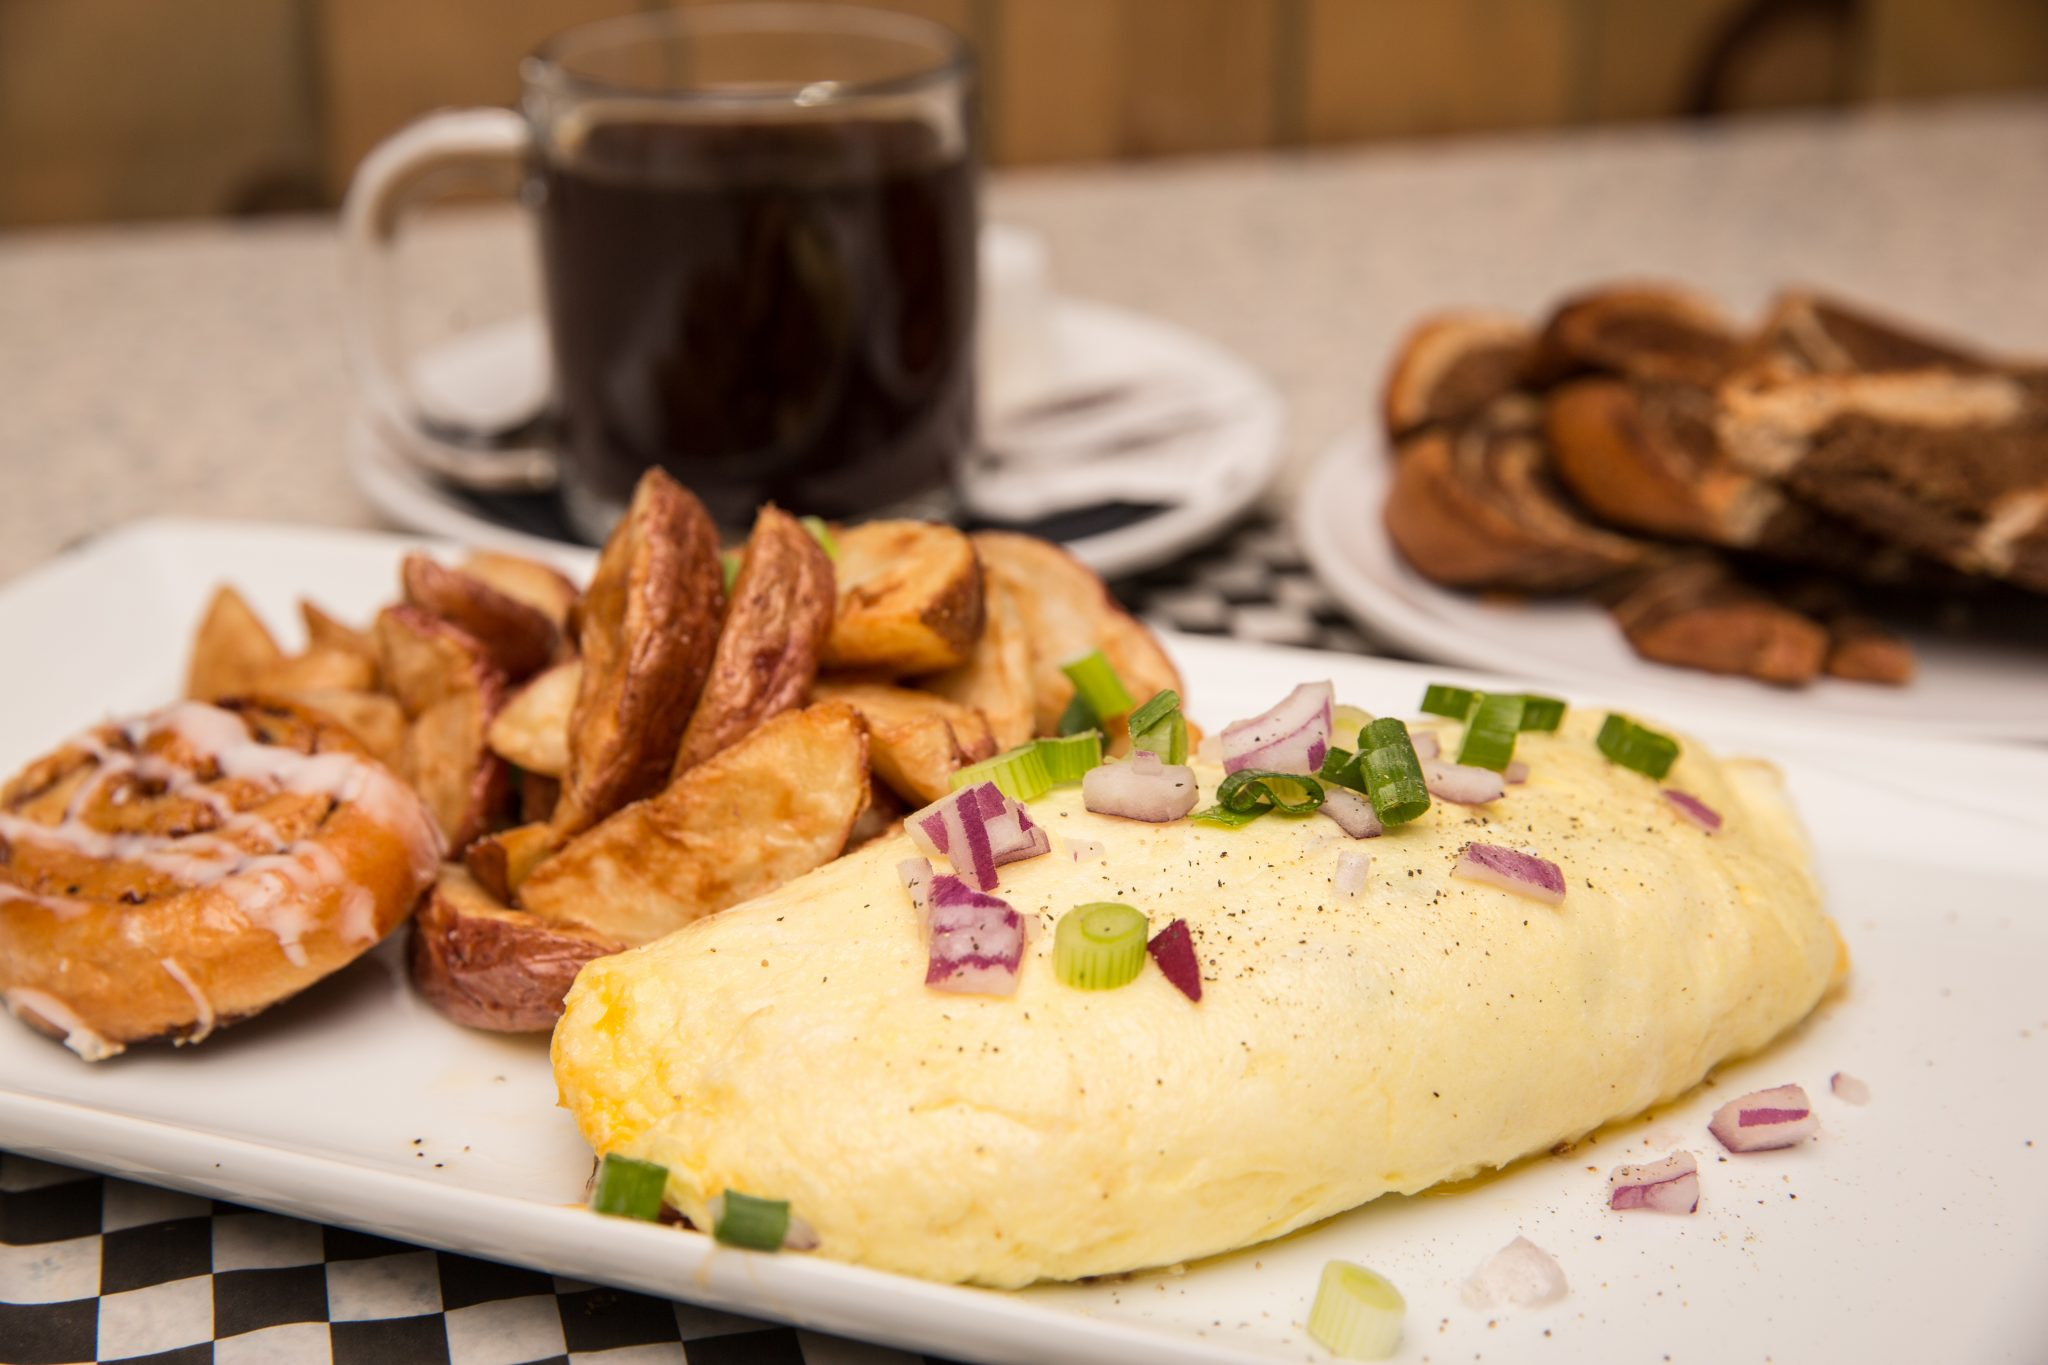 Orchard Omelette - Eggs & Breakfast Things | Brandt's Creek Pub Kelowna